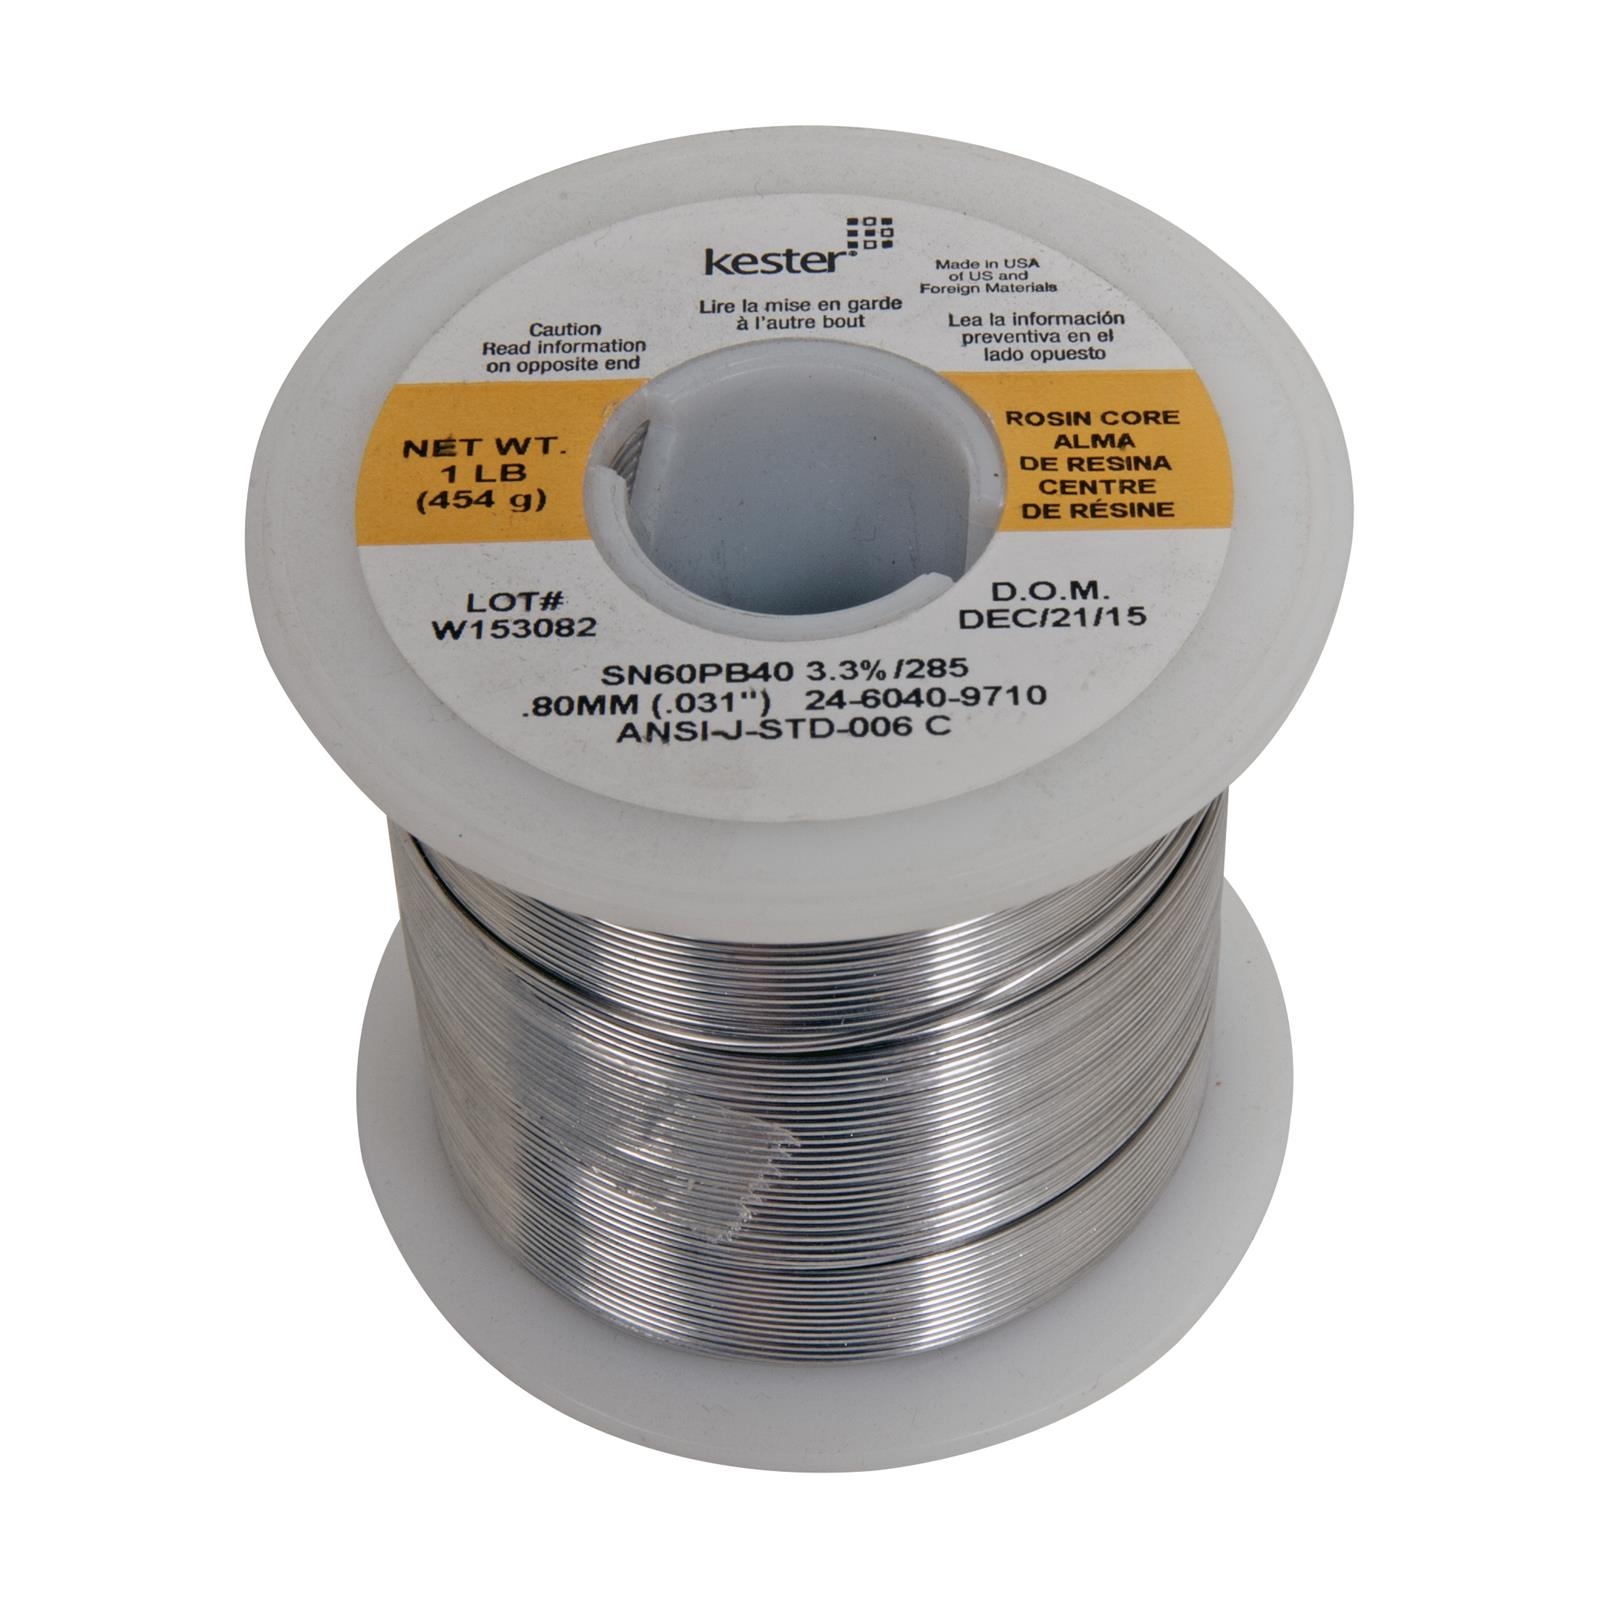 Kester Solder Wire | Kester Solder Products Solder 24 6040 9710 Free Shipping On Most